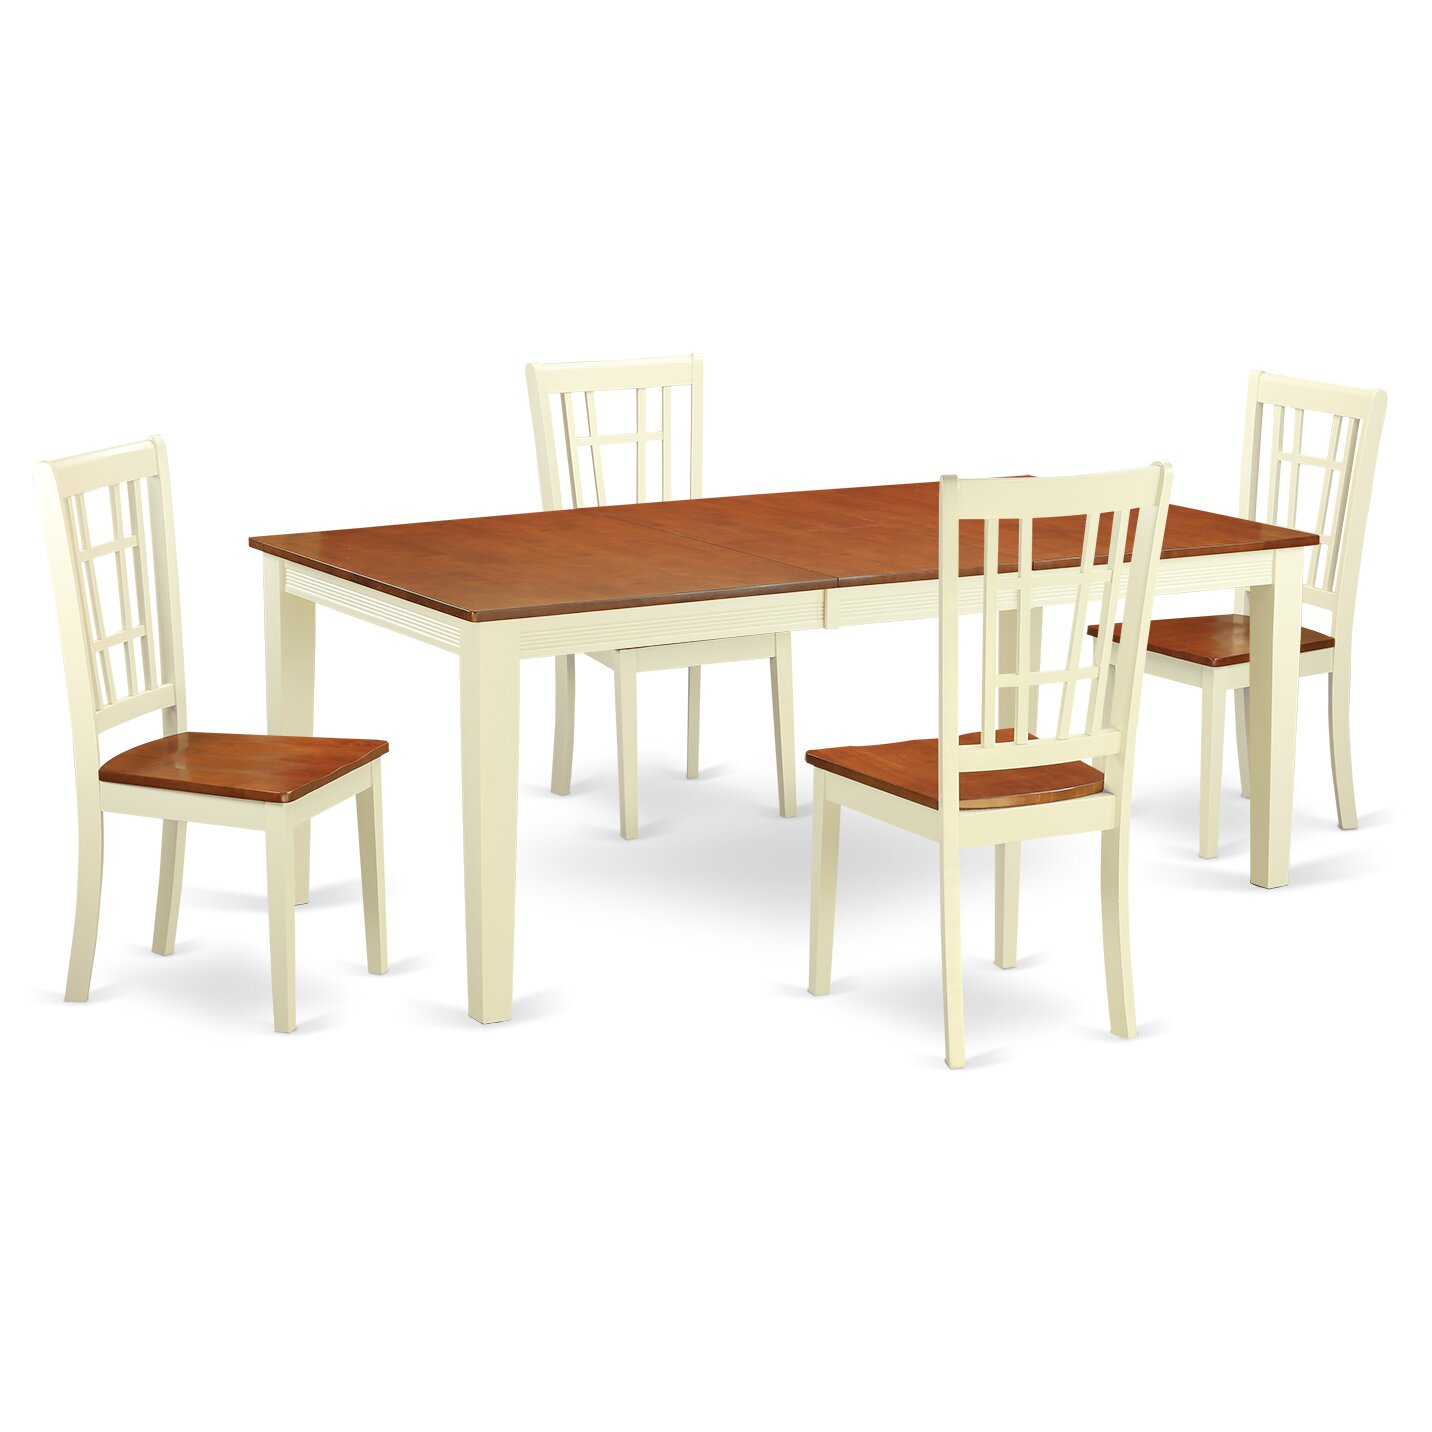 East west quincy 5 piece dining set wayfair for 5 piece living room table set